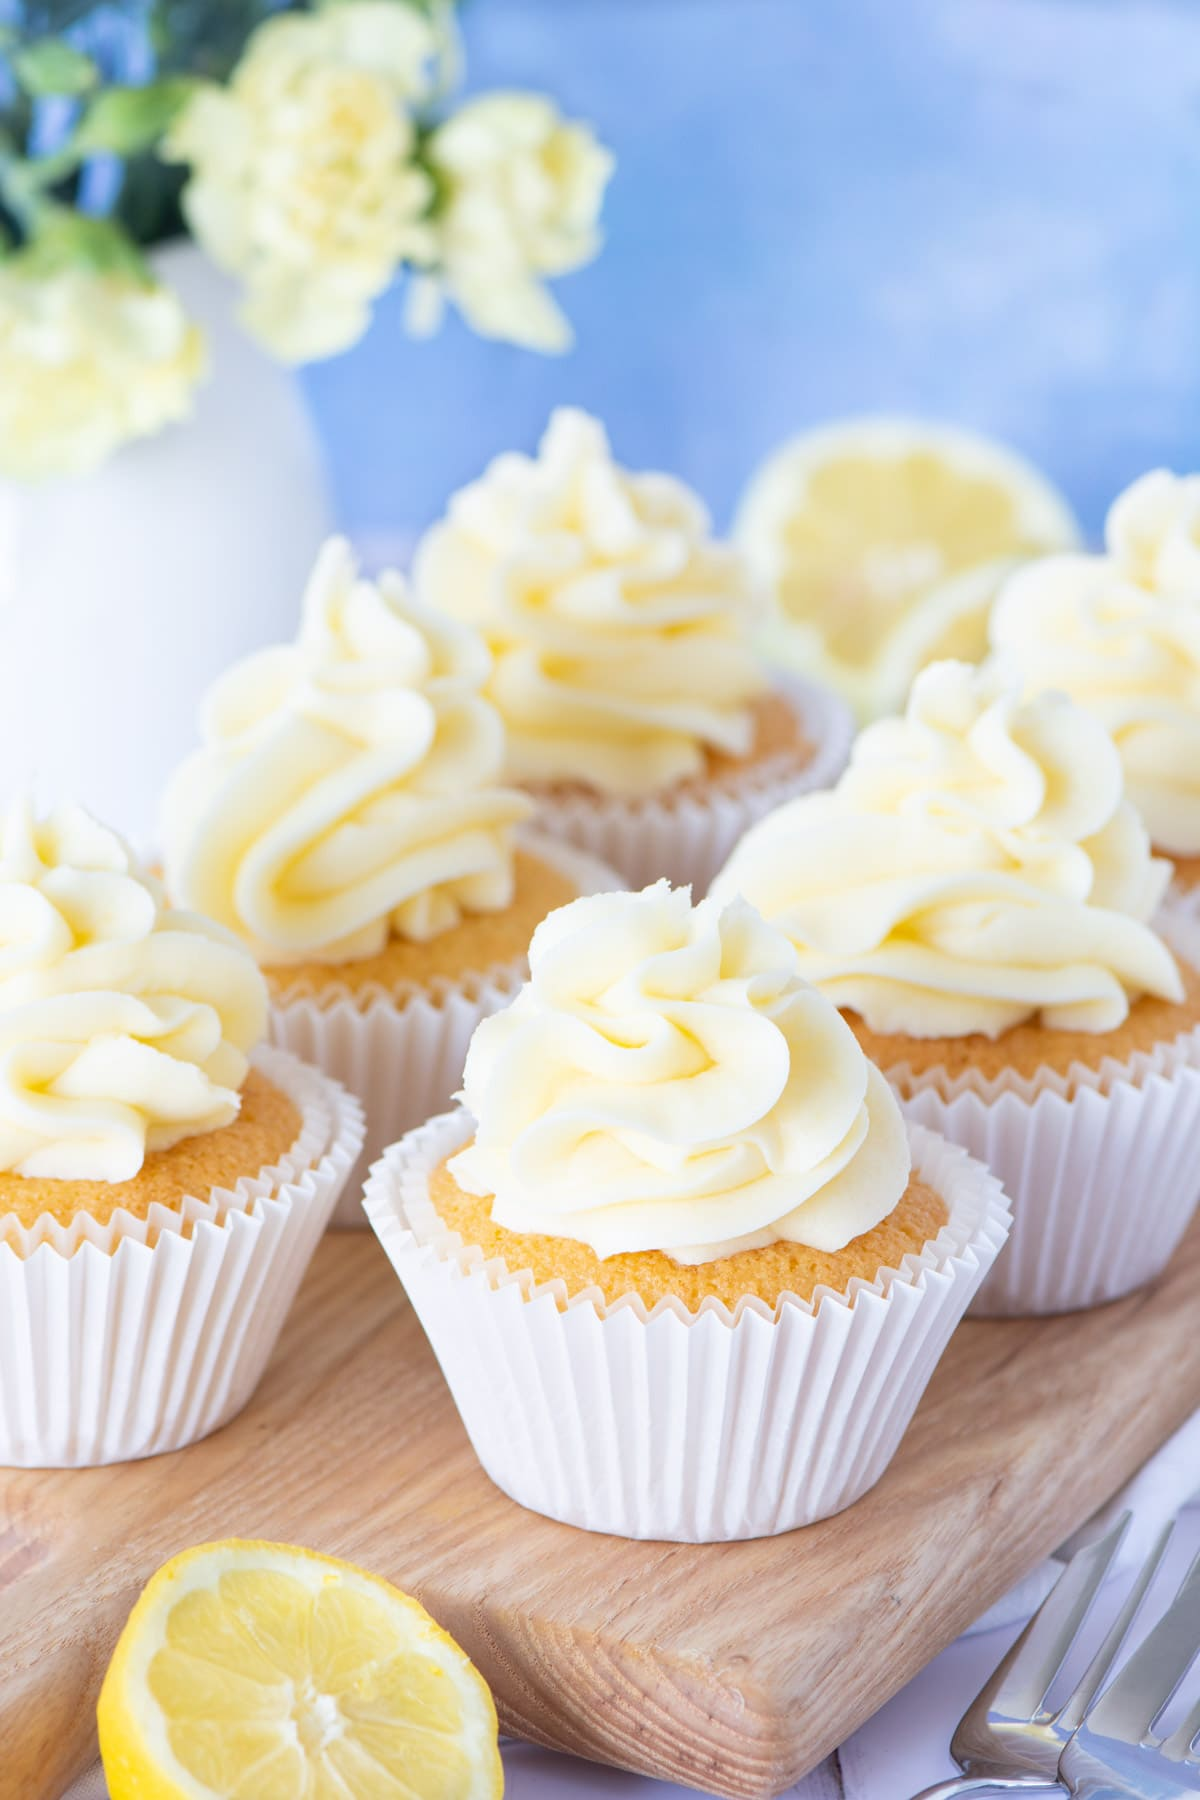 Six lemon cupcakes topped with swirls of lemon buttercream on a wooden board.